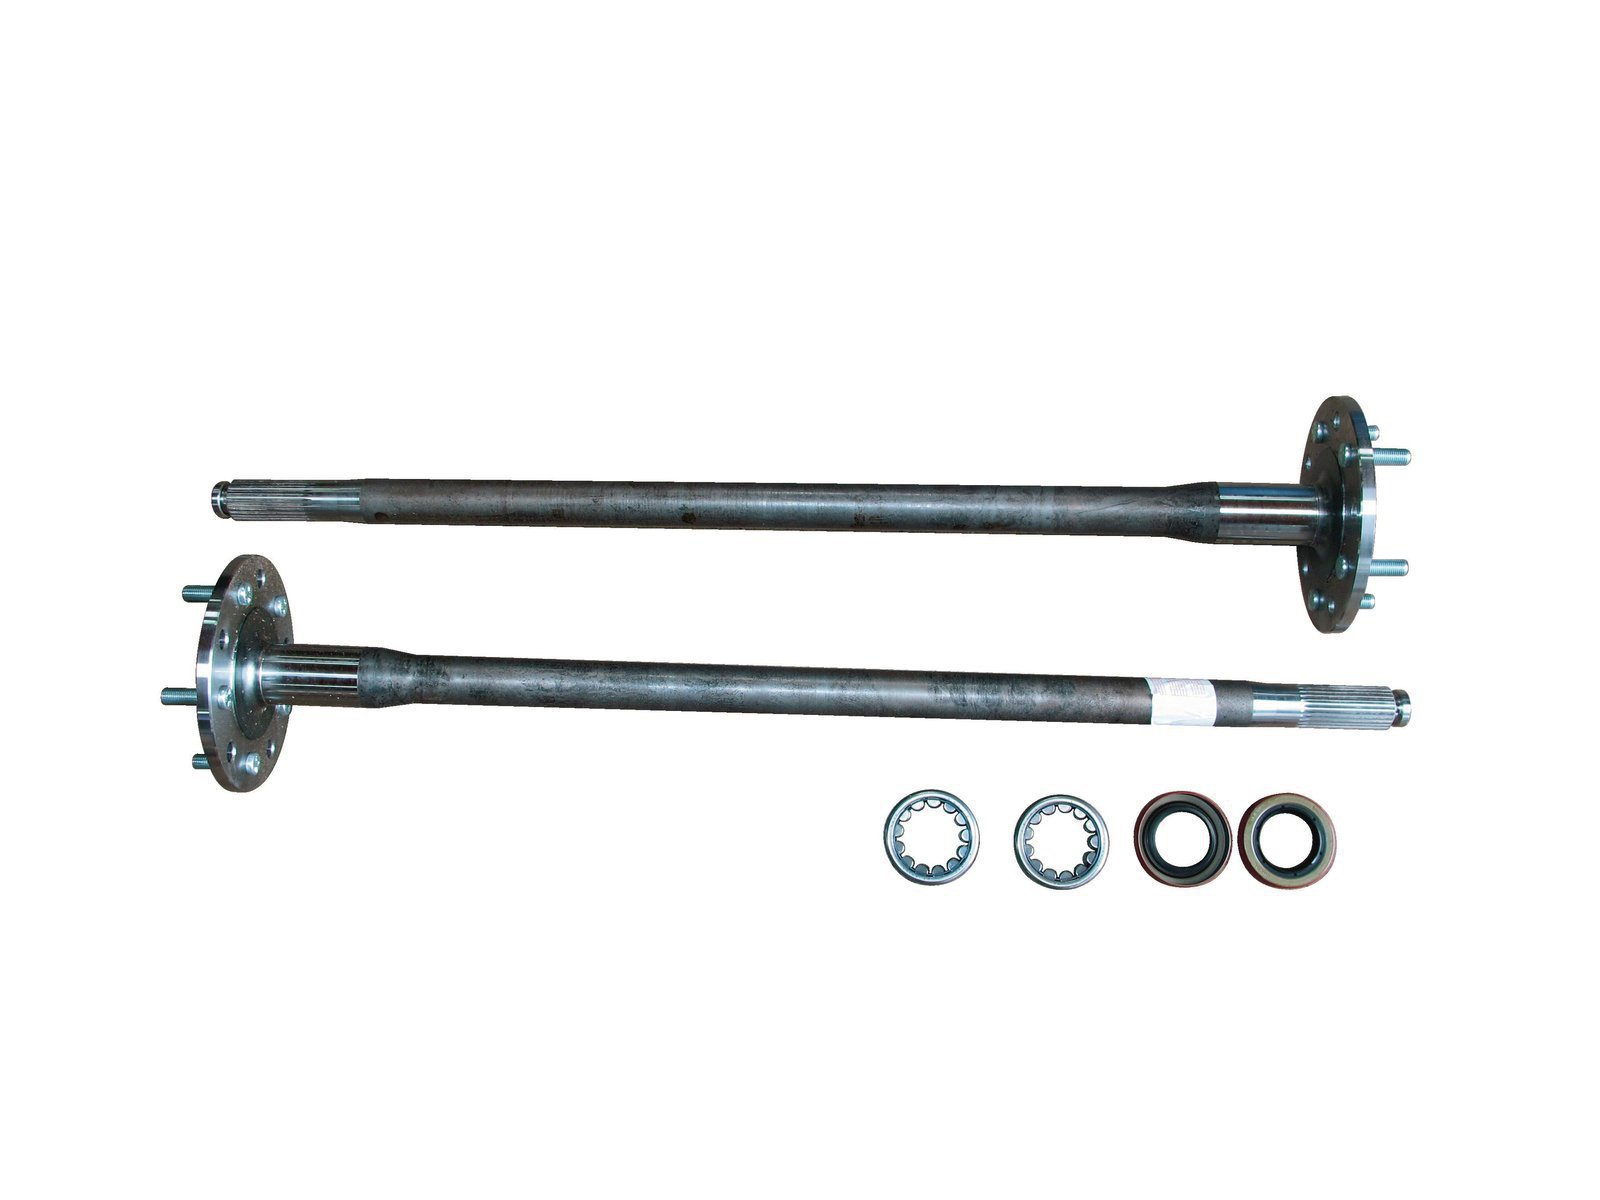 3. High-strength axles, such as these from Moser Engineering (#A3079GMTK), are a wise update. Axle wear can be an issue as the shafts act as an inner wheel bearing race and are in direct contact with rollers.